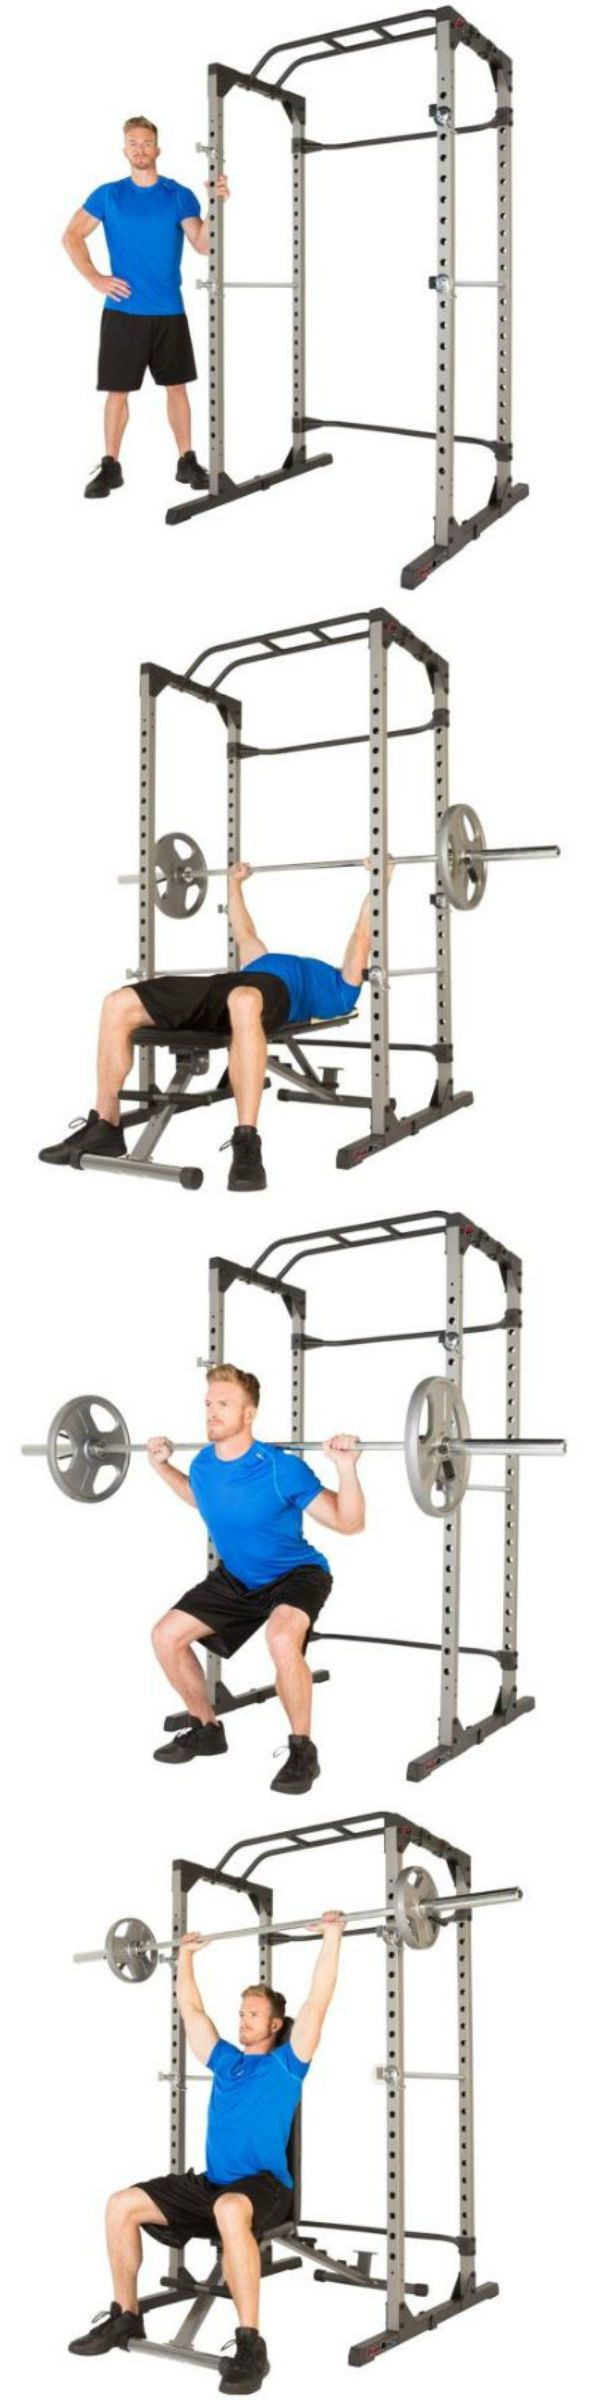 Power Racks and Smith Machines 179815: Squat Rack Power Cage Home Fitness Gym Machines Commercial Equipment Health Body -> BUY IT NOW ONLY: $279.99 on eBay!